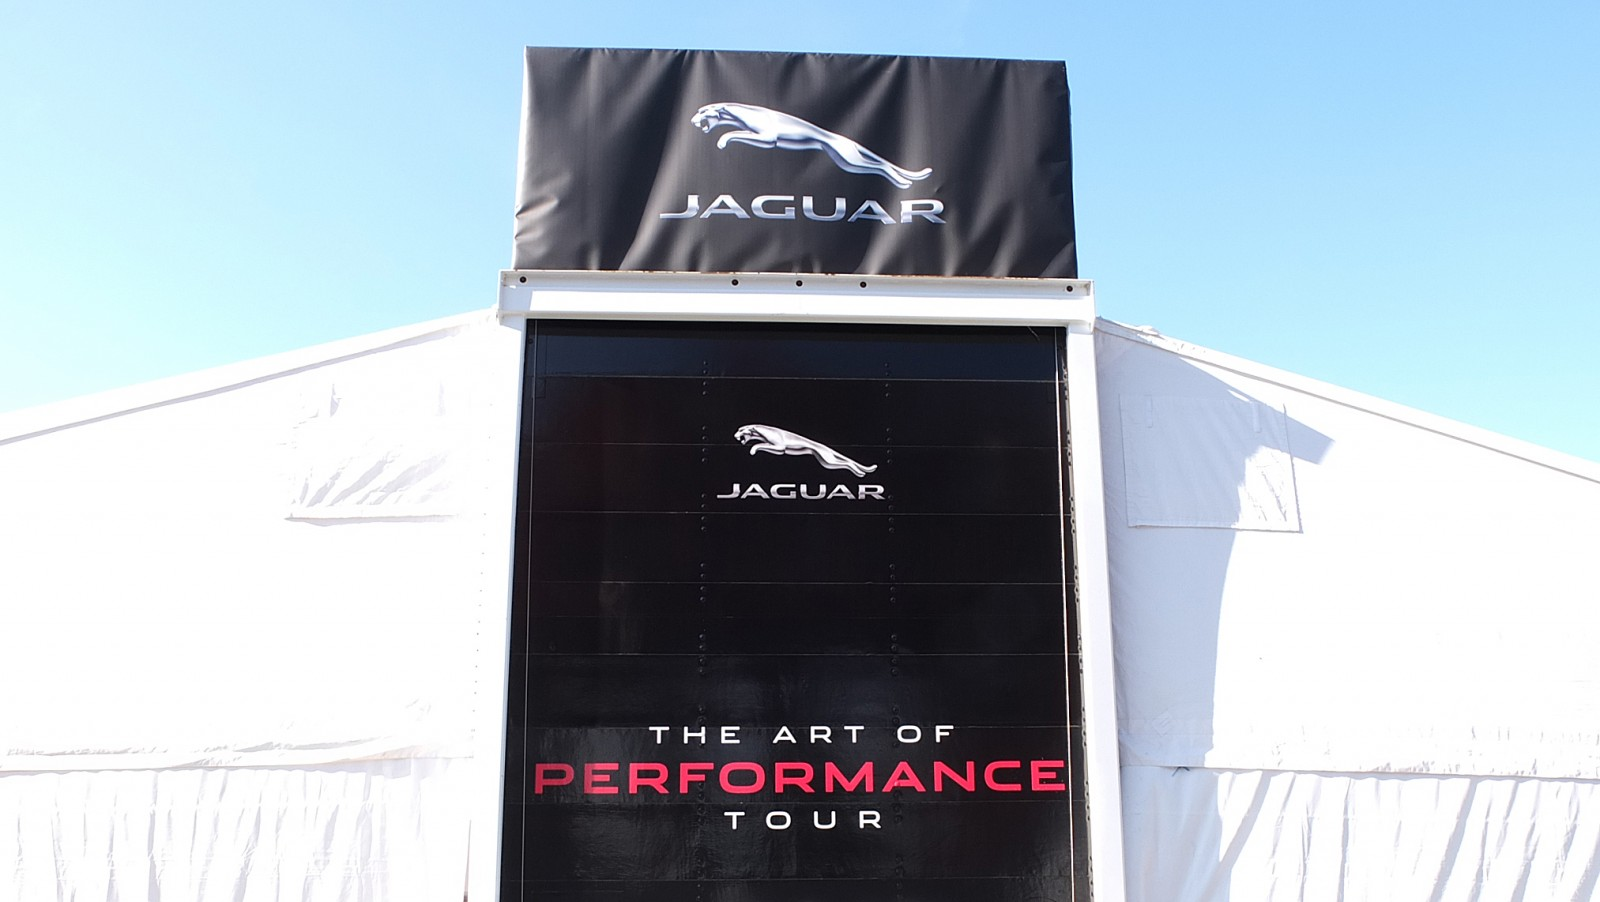 Jaguar Art of Performance Tour 2017 sign